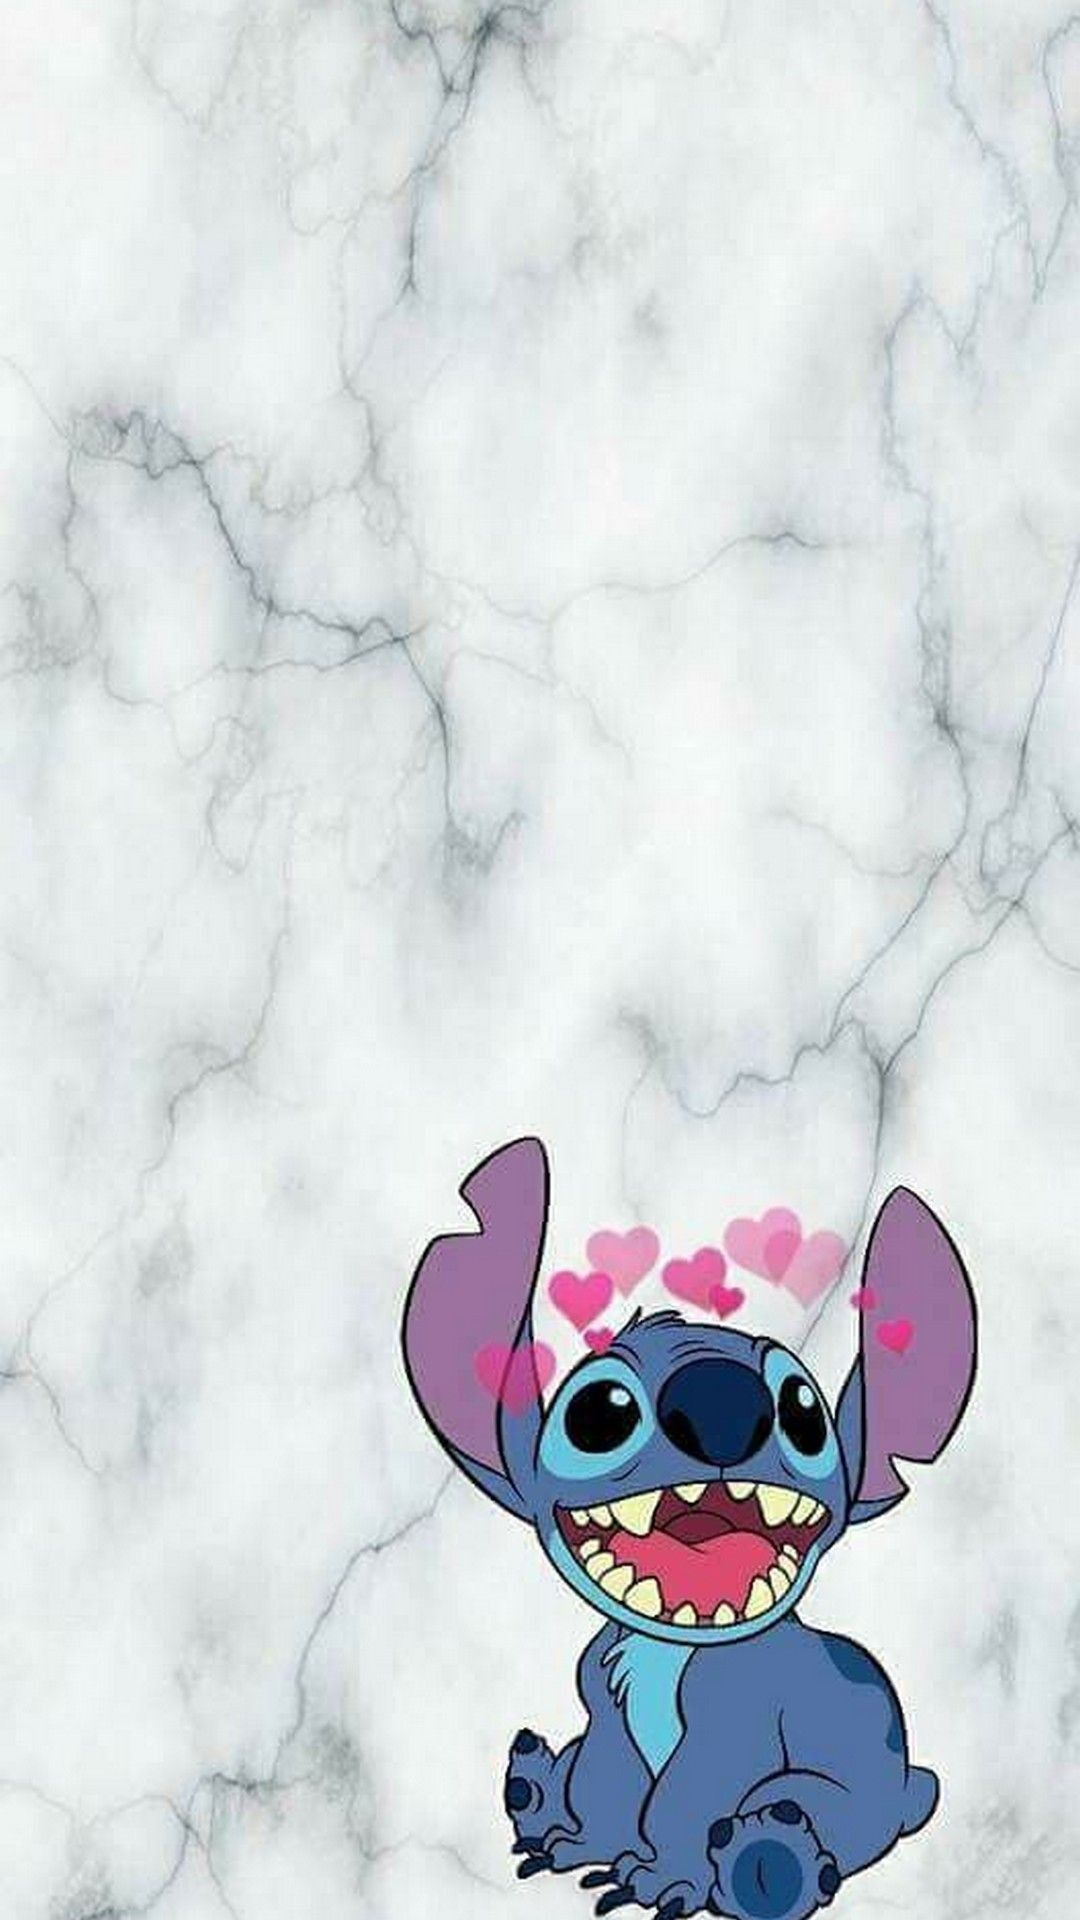 Pin By Stevie Lynn Blaschke On Wallpaper In 2019 Disney Phone